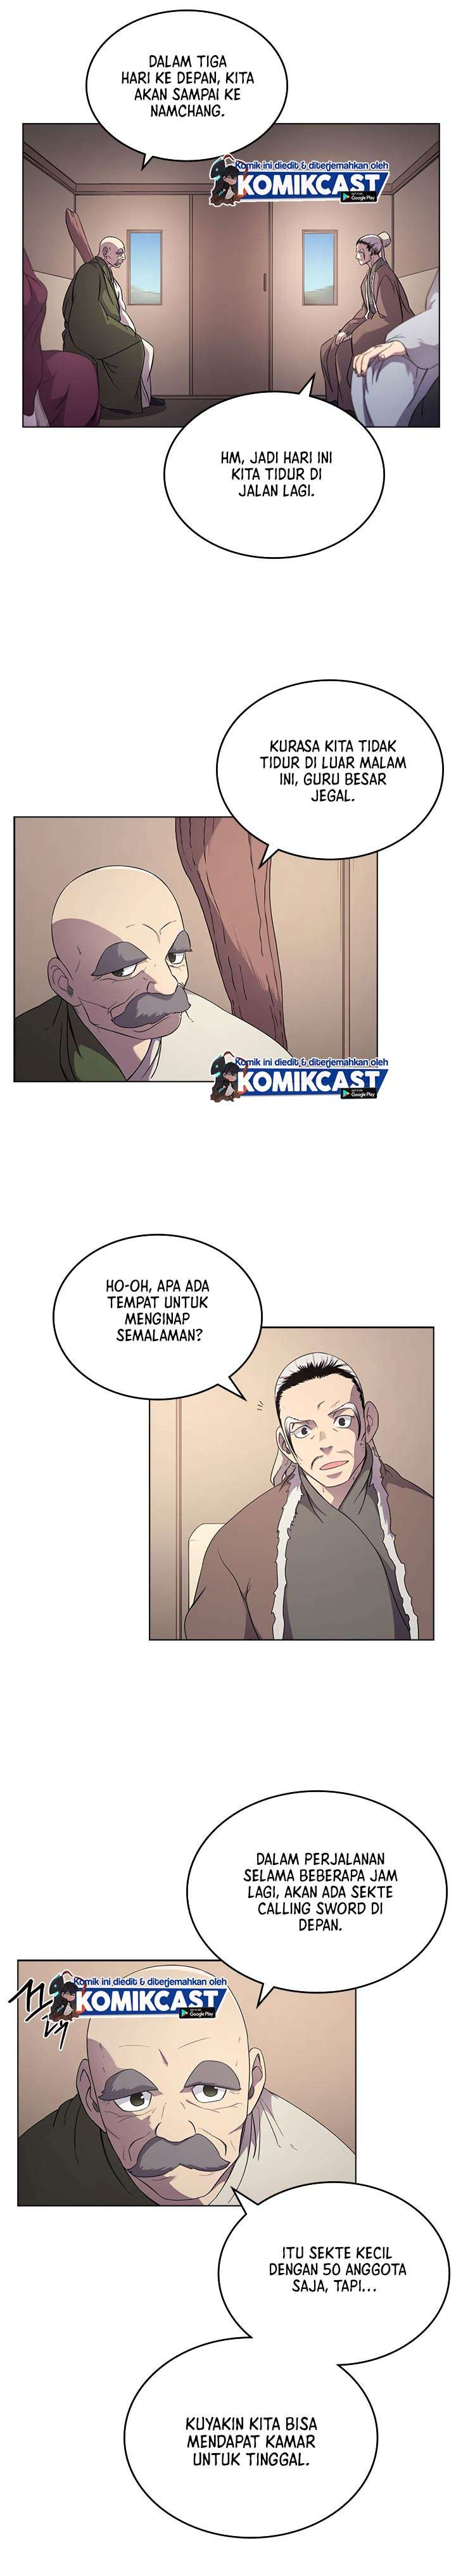 Chronicles of Heavenly Demon Chapter 143 Bahasa Indonesia page 13